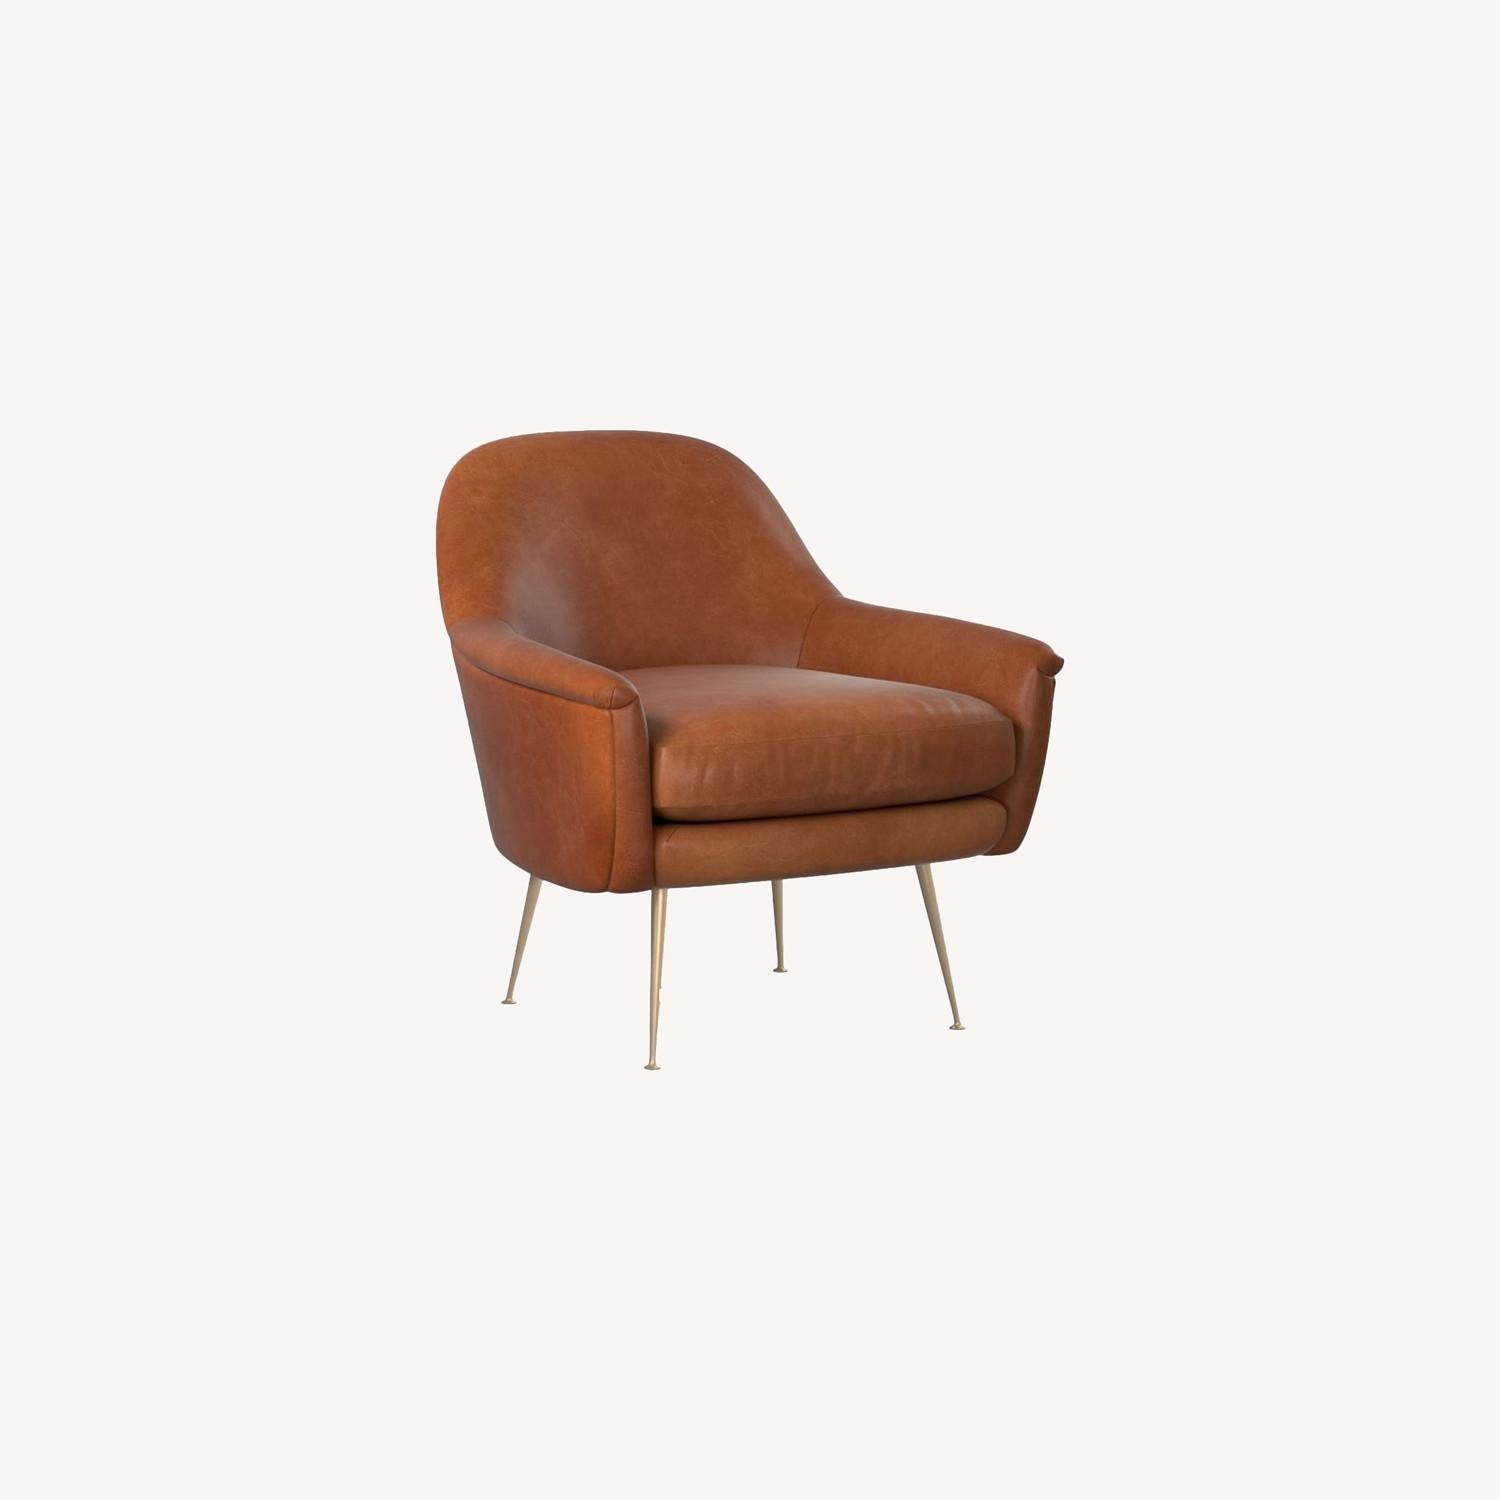 West Elm Phoebe Upholstered Mid-Century Chair - image-0